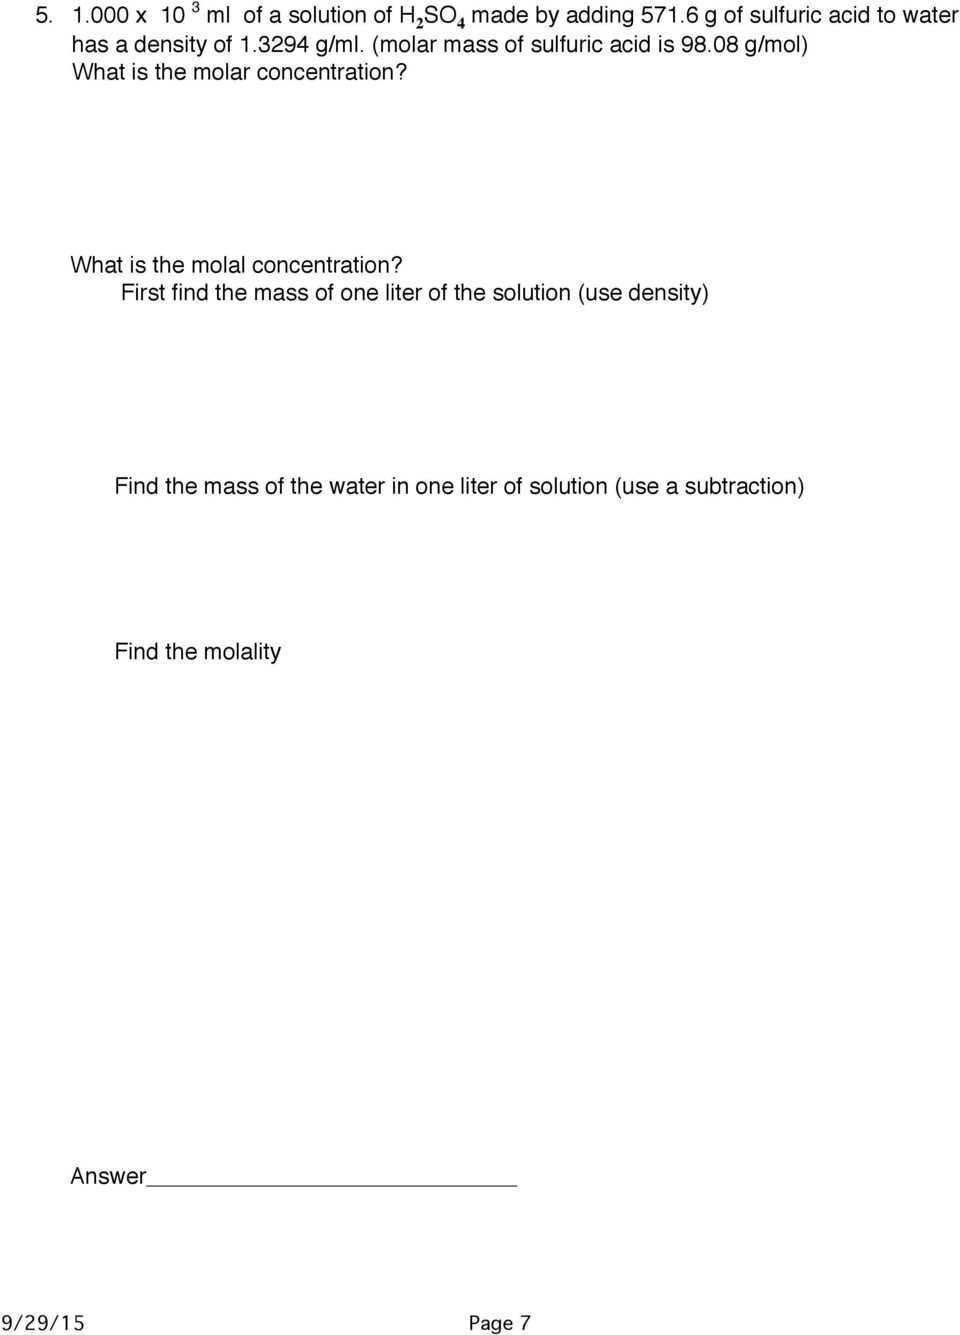 08 g/mol) What is the molar concentration? What is the molal concentration?